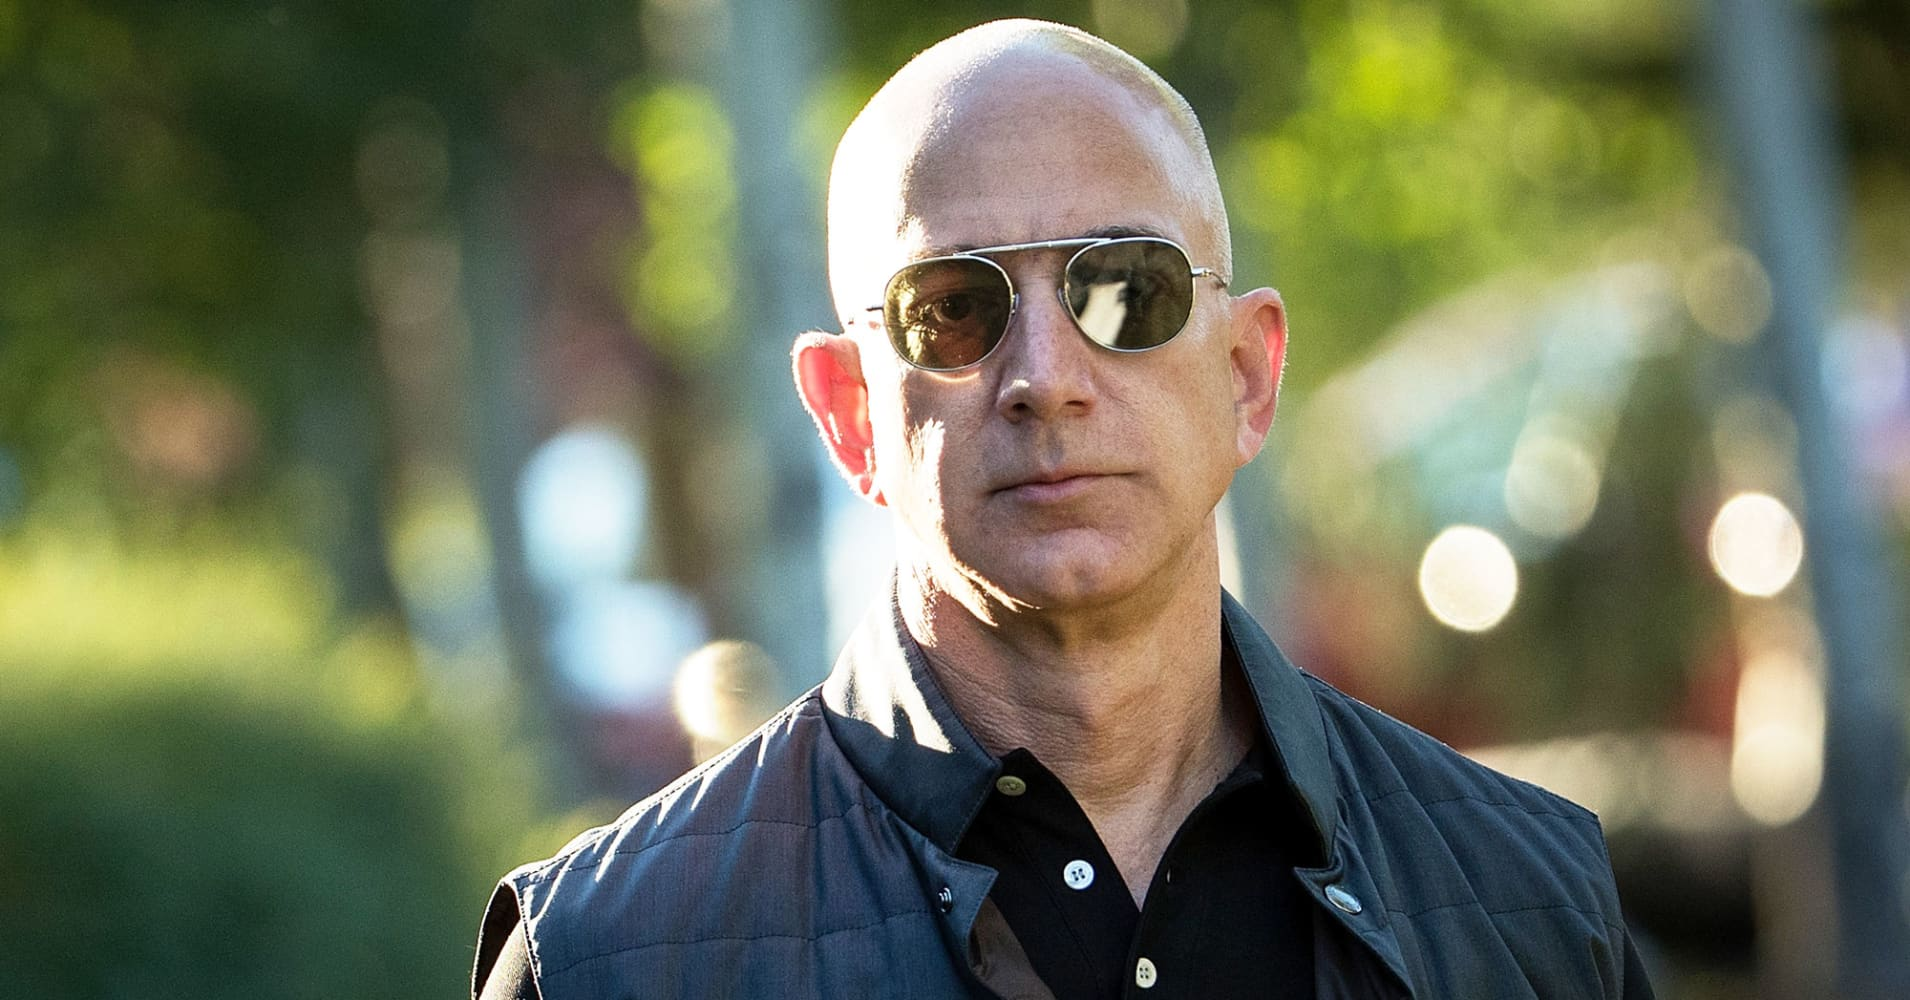 Jeff Bezos and Bill Gates both do this mundane chore that may have significant mental benefits